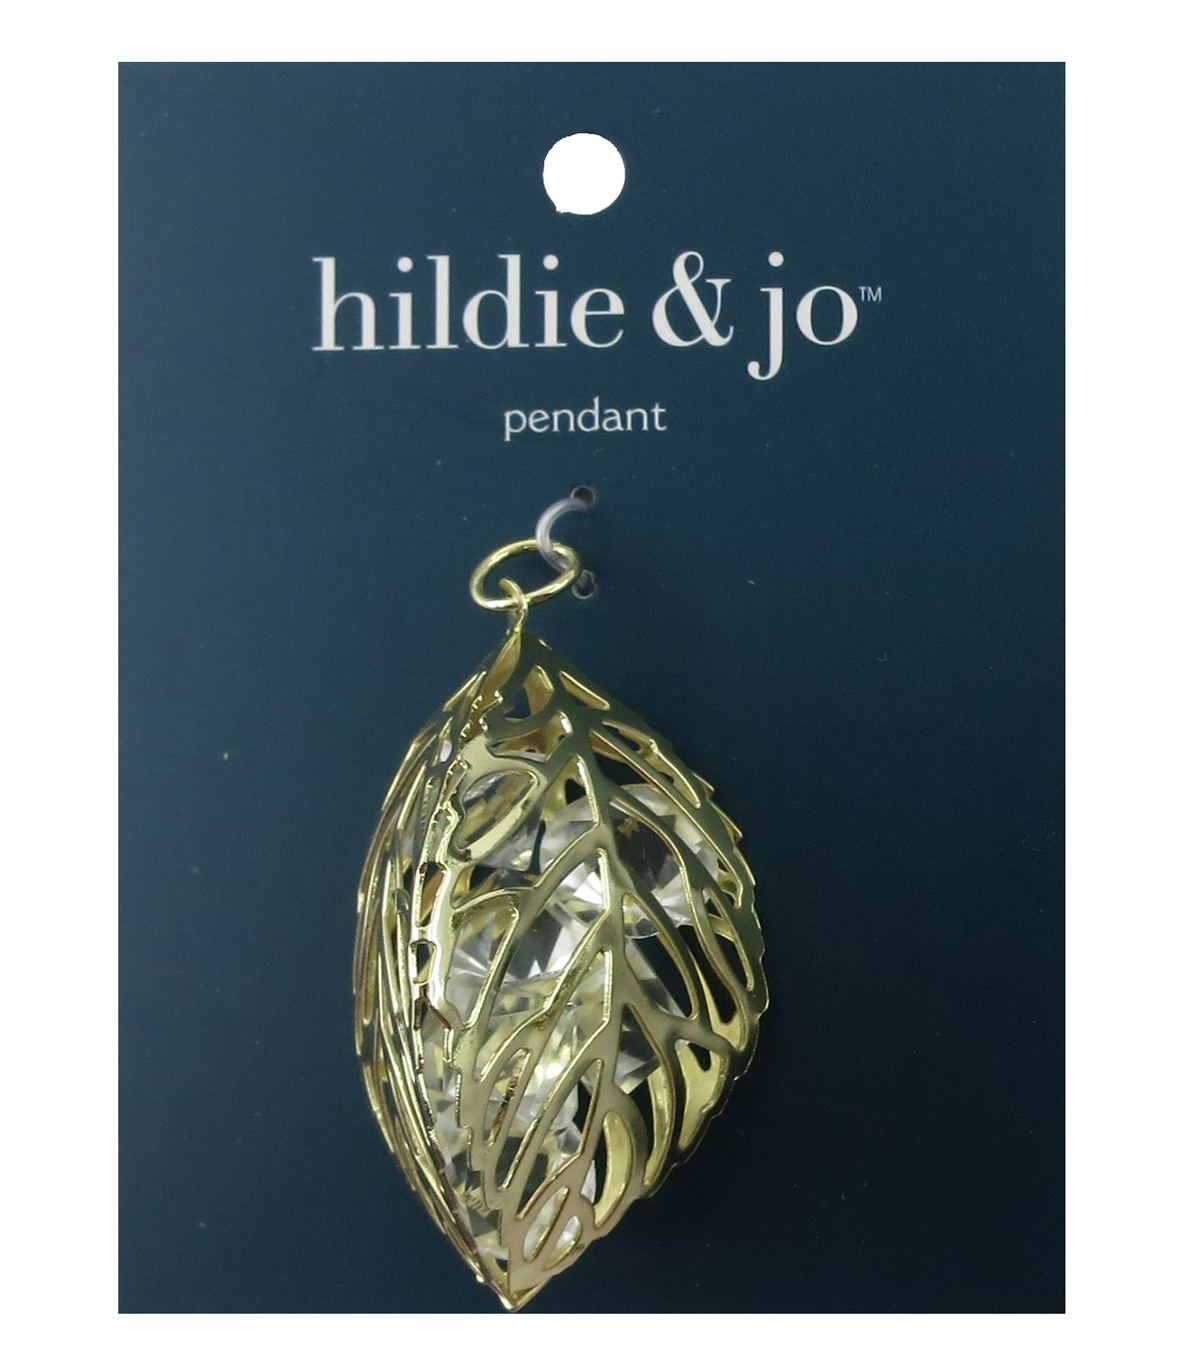 hildie & jo™ Three Open Leaf Gold Pendant-Clear Diamond Crystals